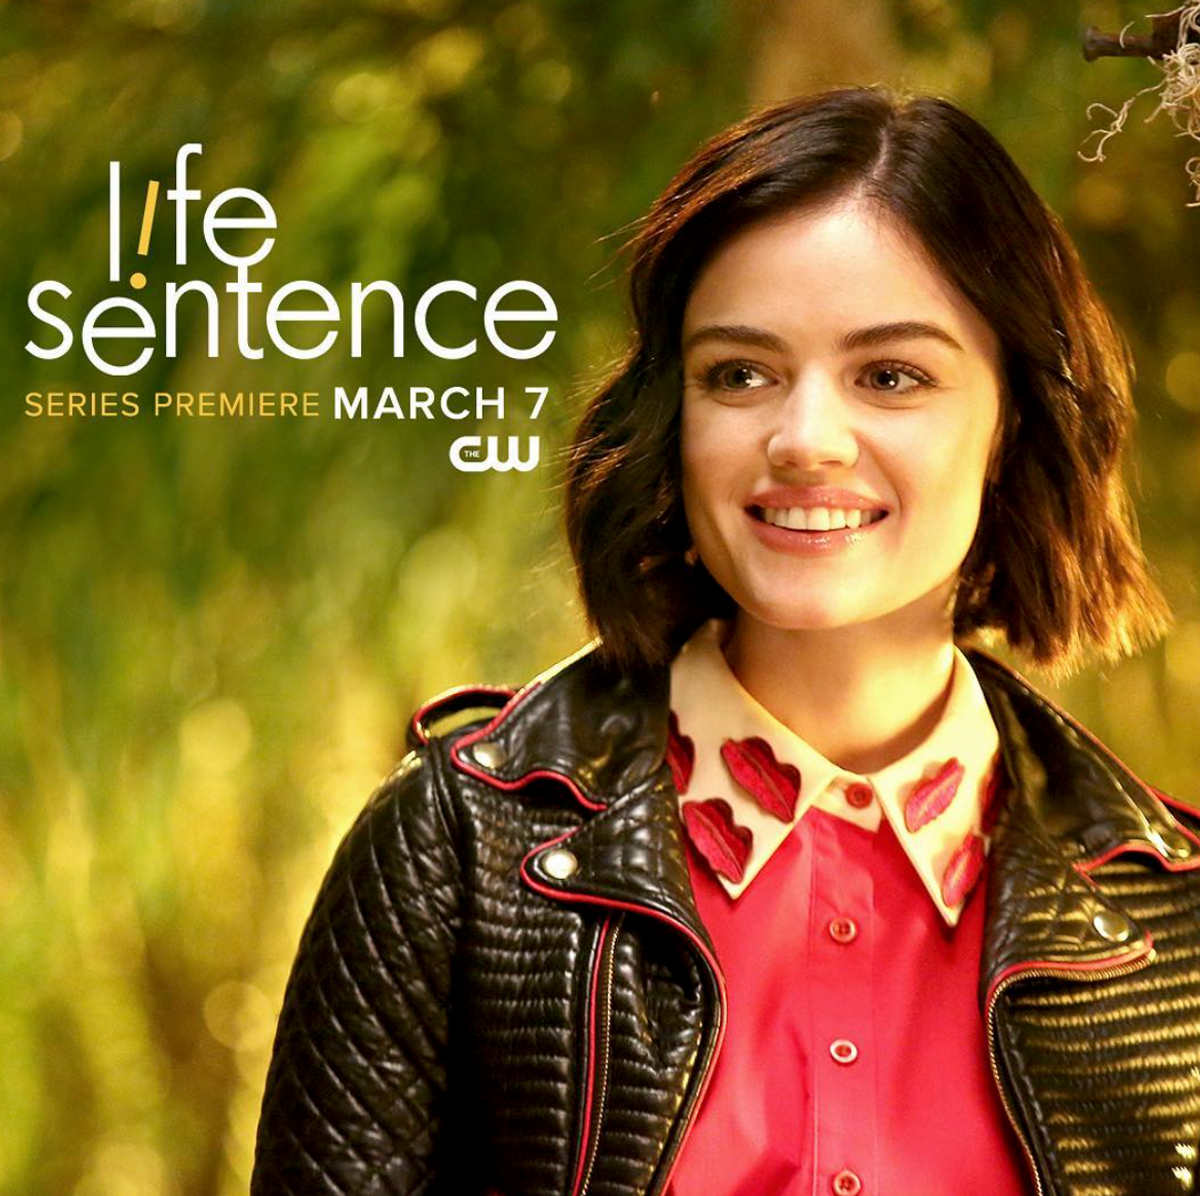 5 TV Series Premieres You Should Definitely Tune Into This Spring